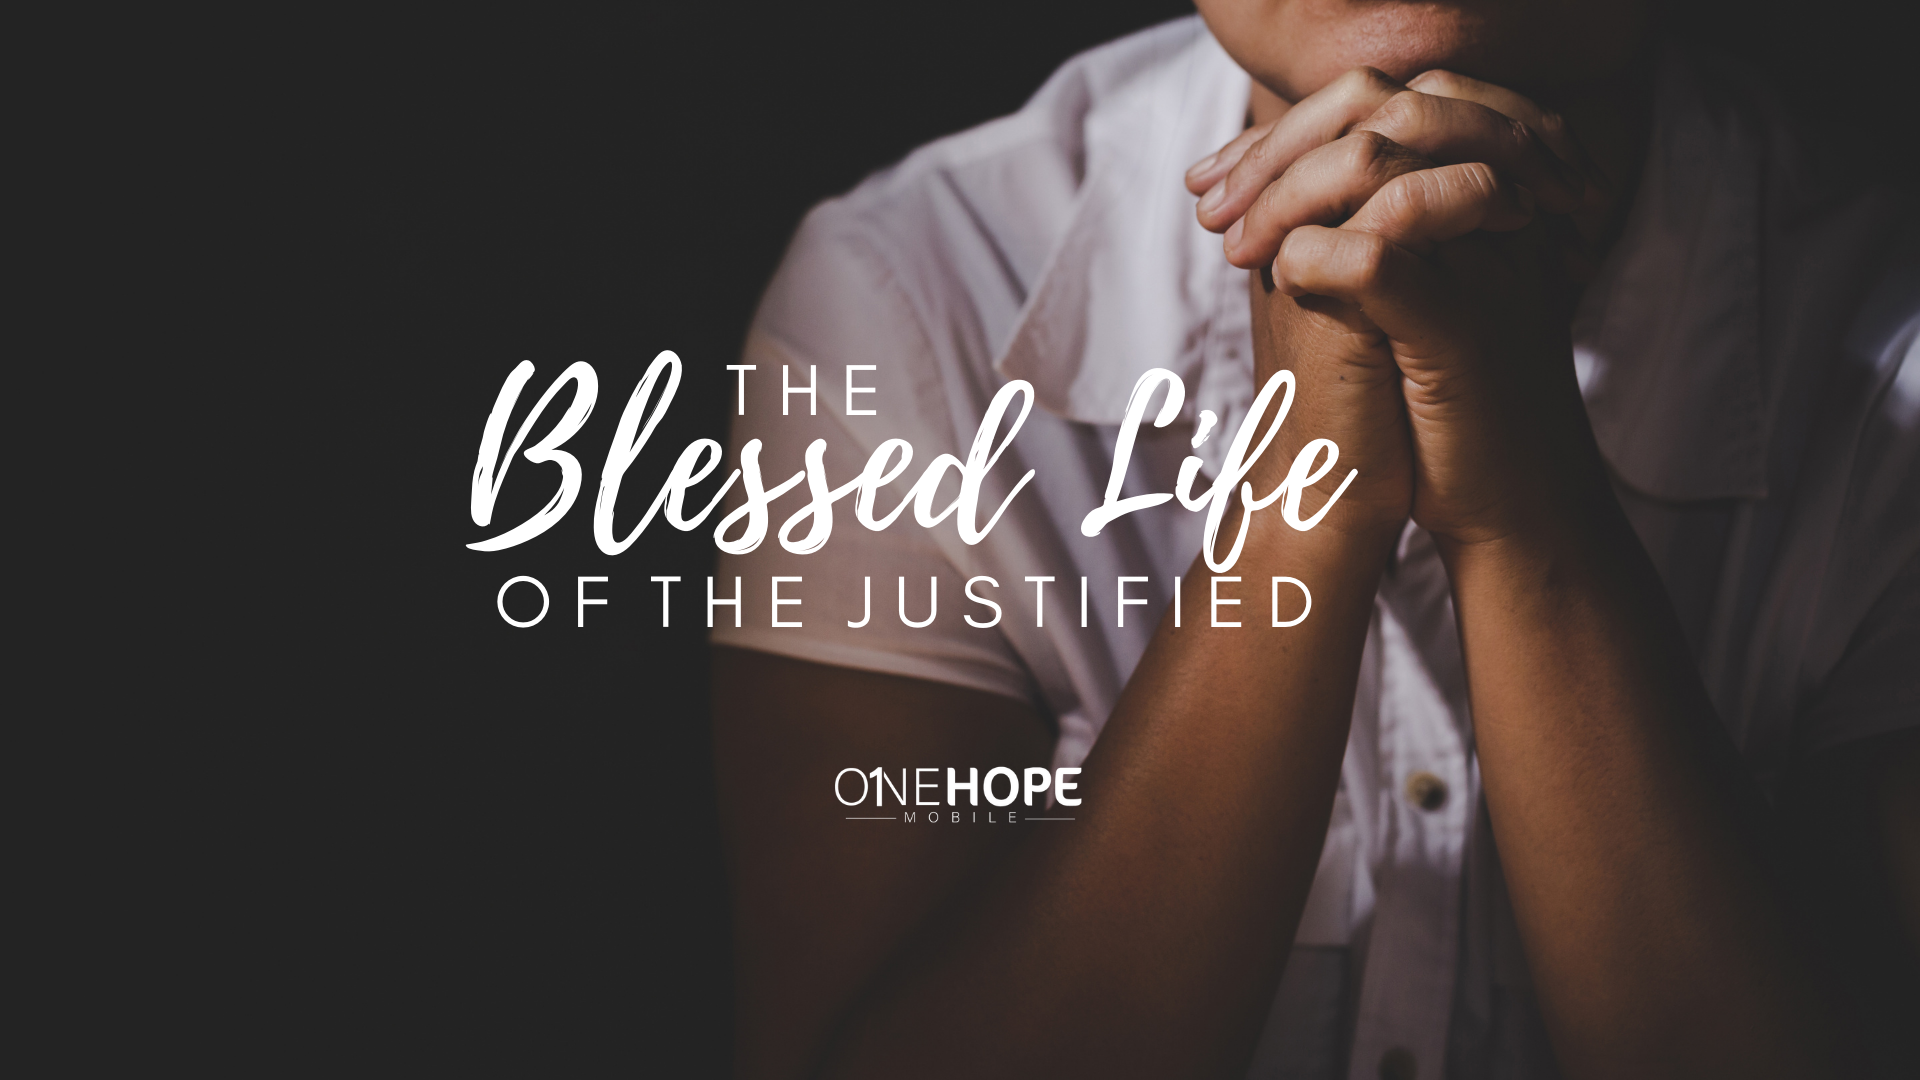 The Blessed Life of the Justified